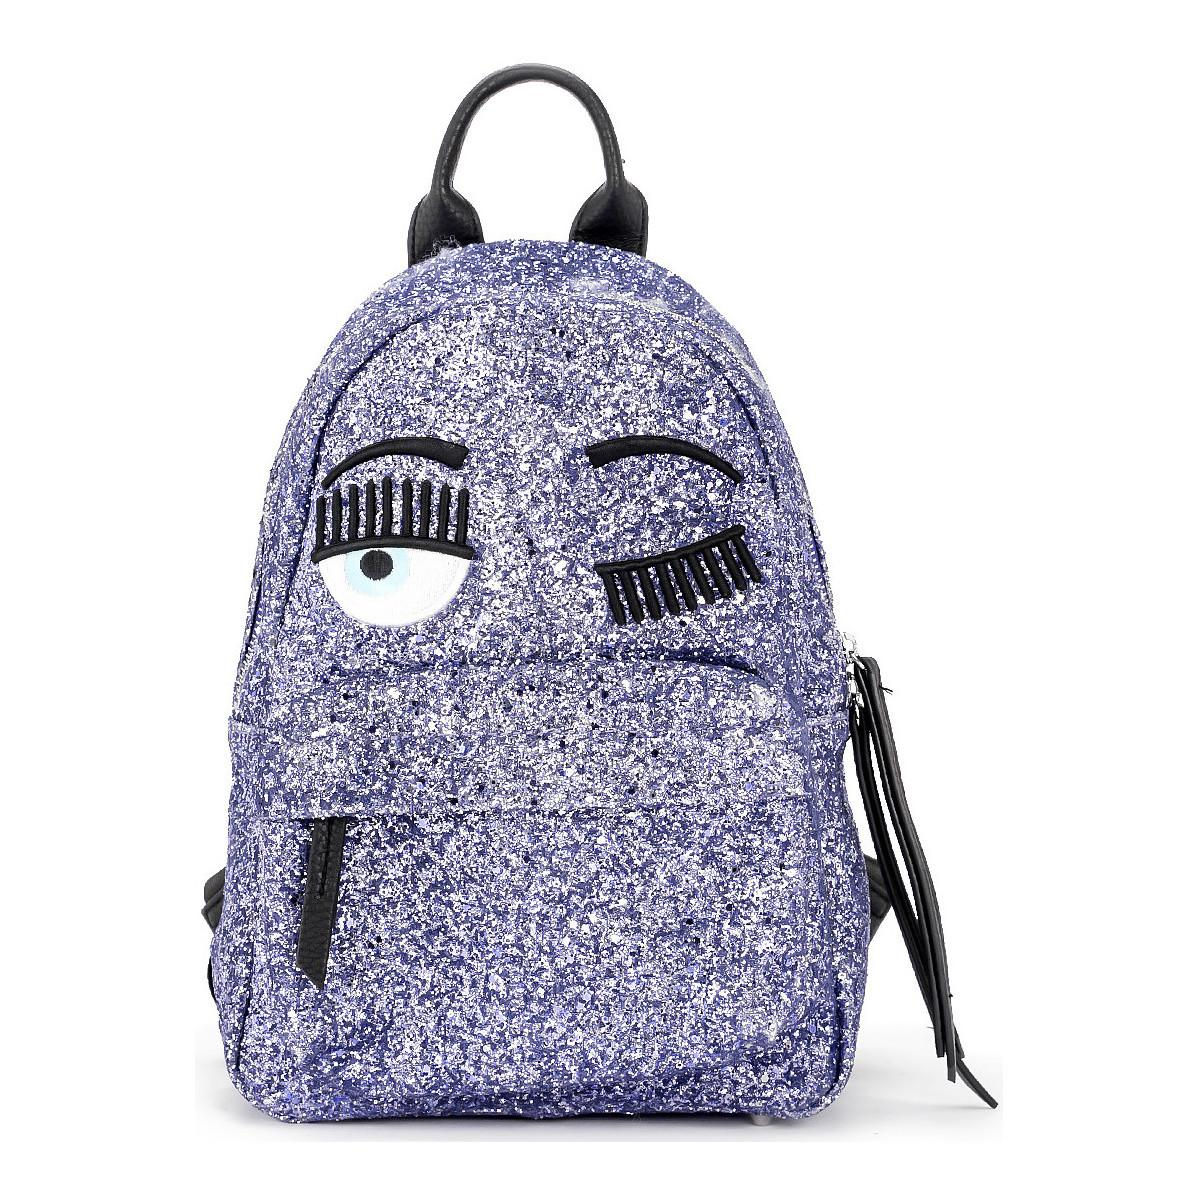 6a54056e16 Chiara Ferragni Zaino Flirting In Glitter Viola Women s Backpack In ...